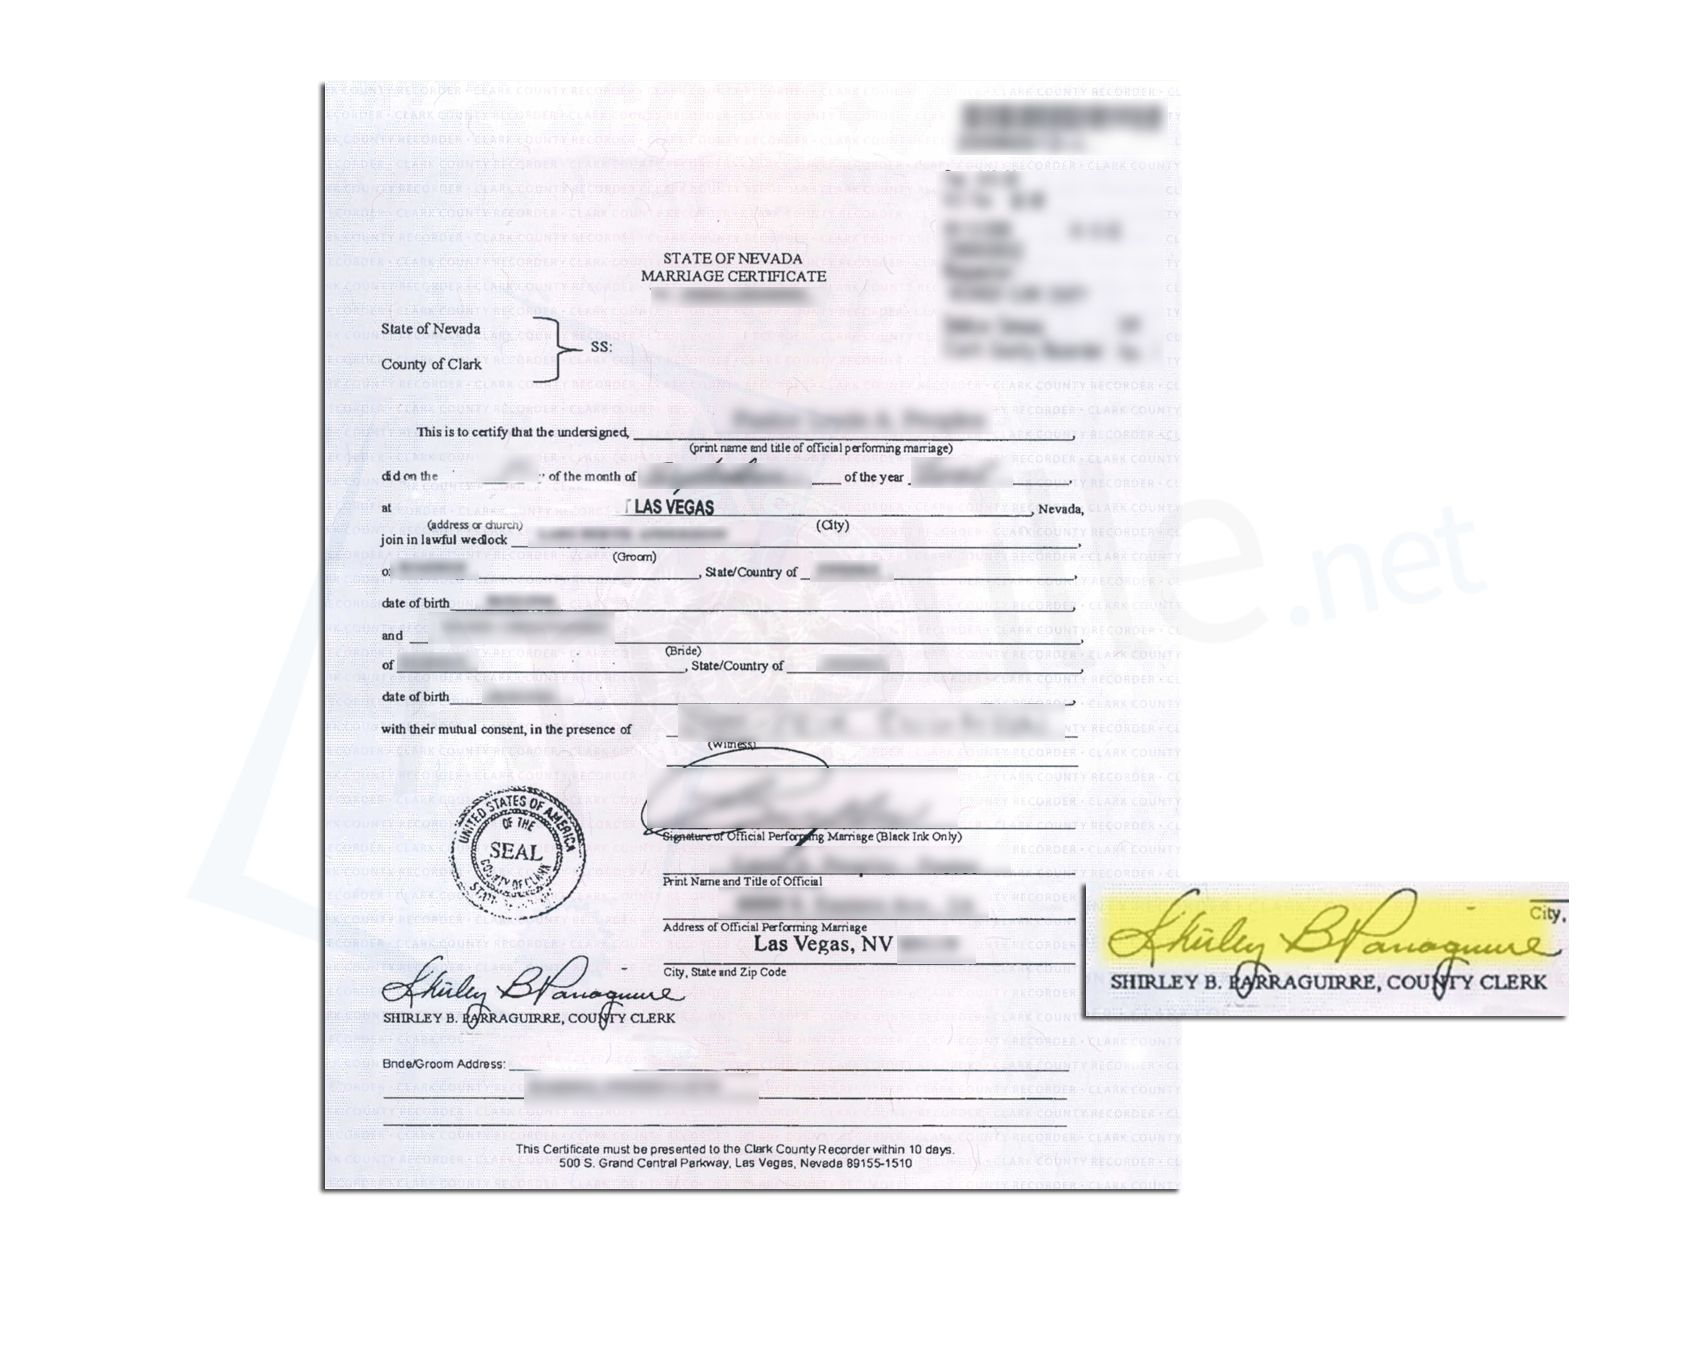 State Of Nevada Marriage Certificate Issued By Shirley B Barraguirre County  Clerk